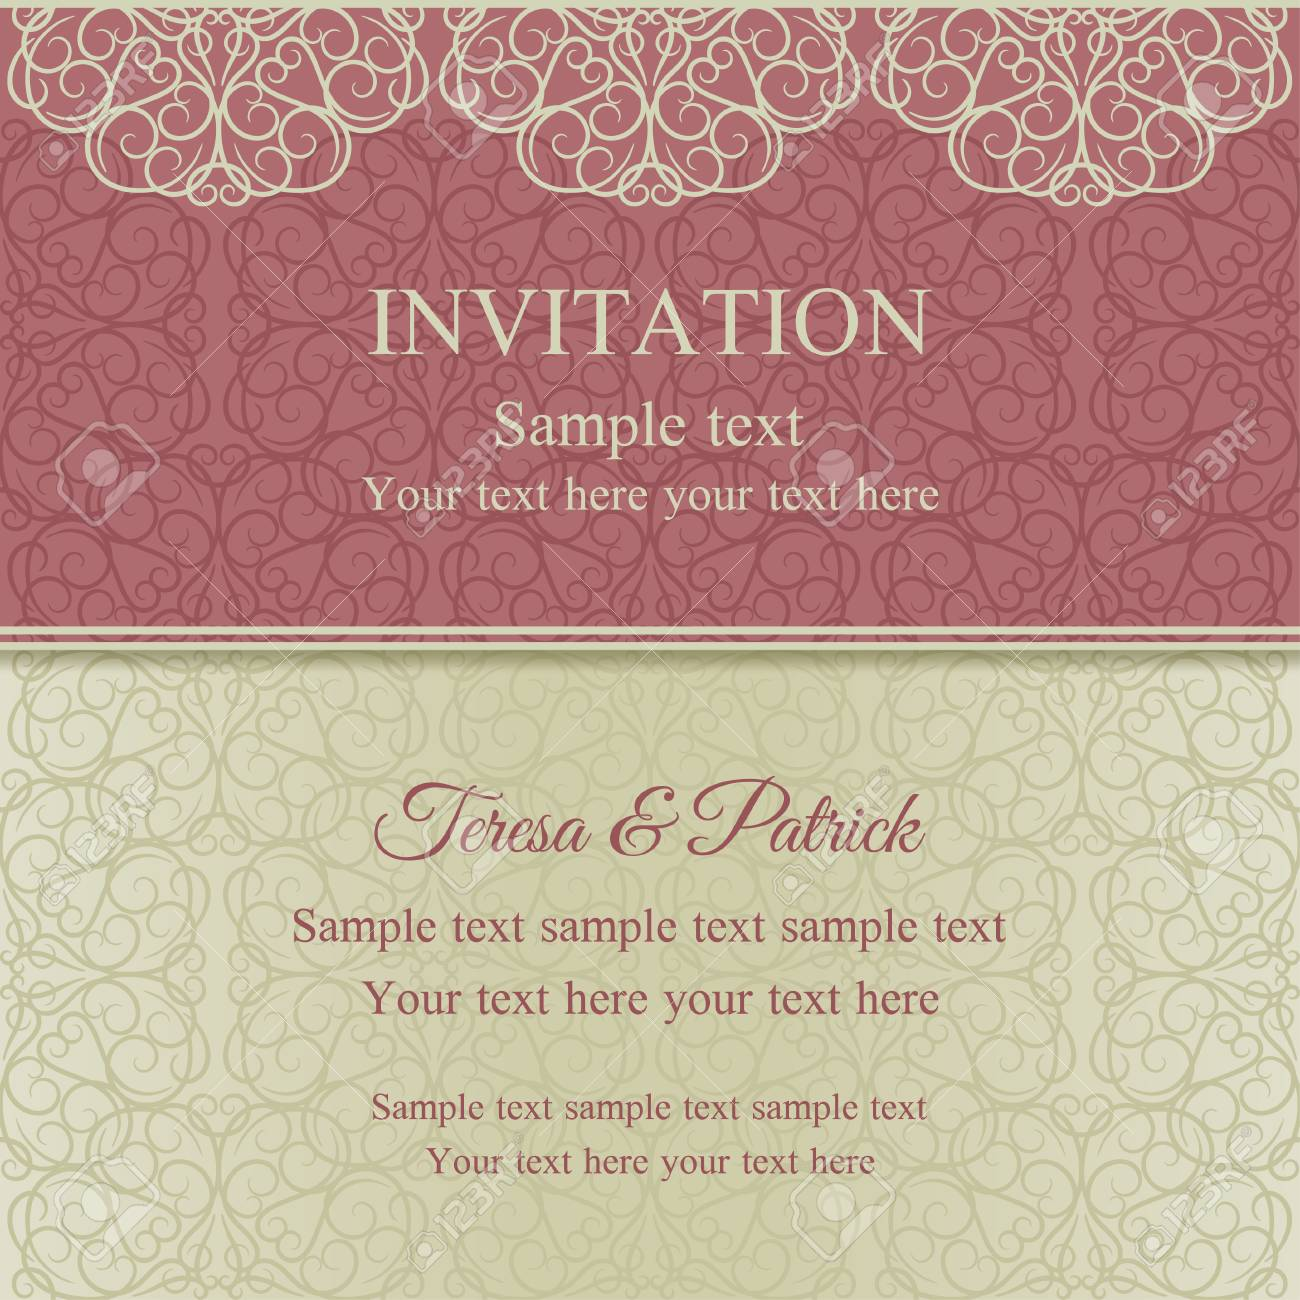 Baroque Invitation Card In Old-fashioned Style, Pink And Beige ...